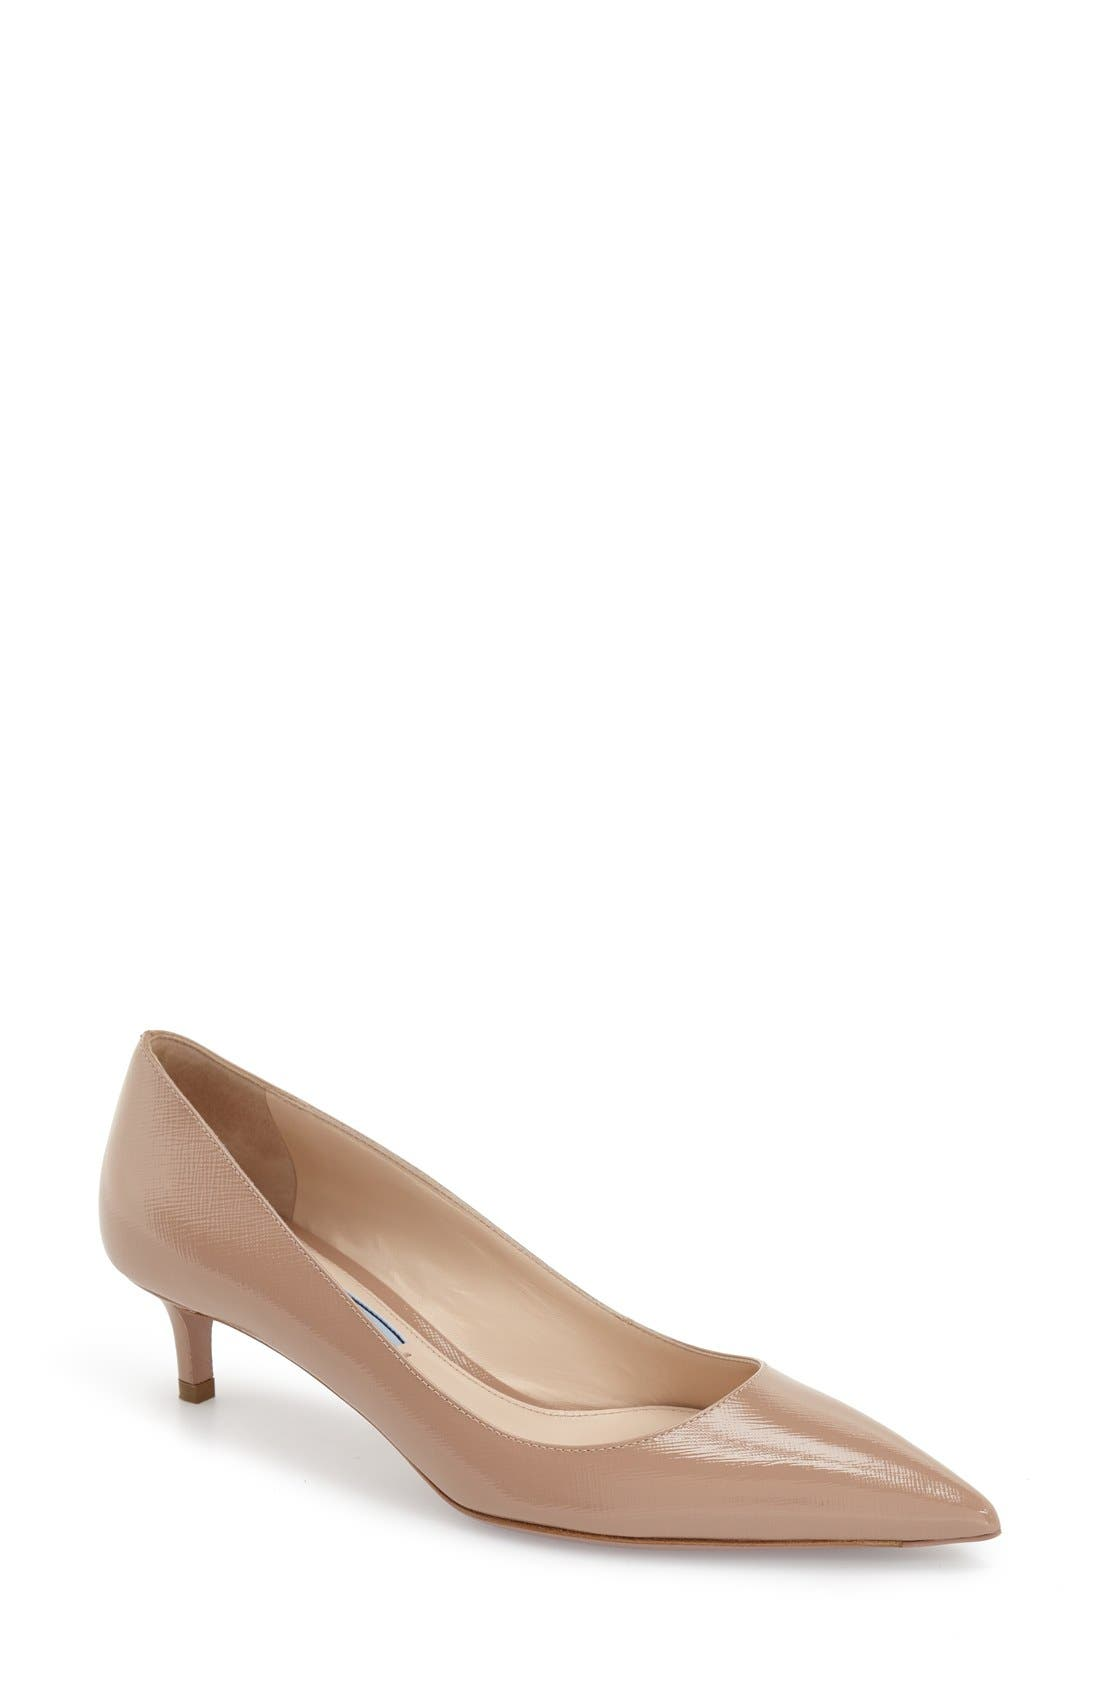 Pointy Toe Pump,                             Main thumbnail 1, color,                             Beige Leather